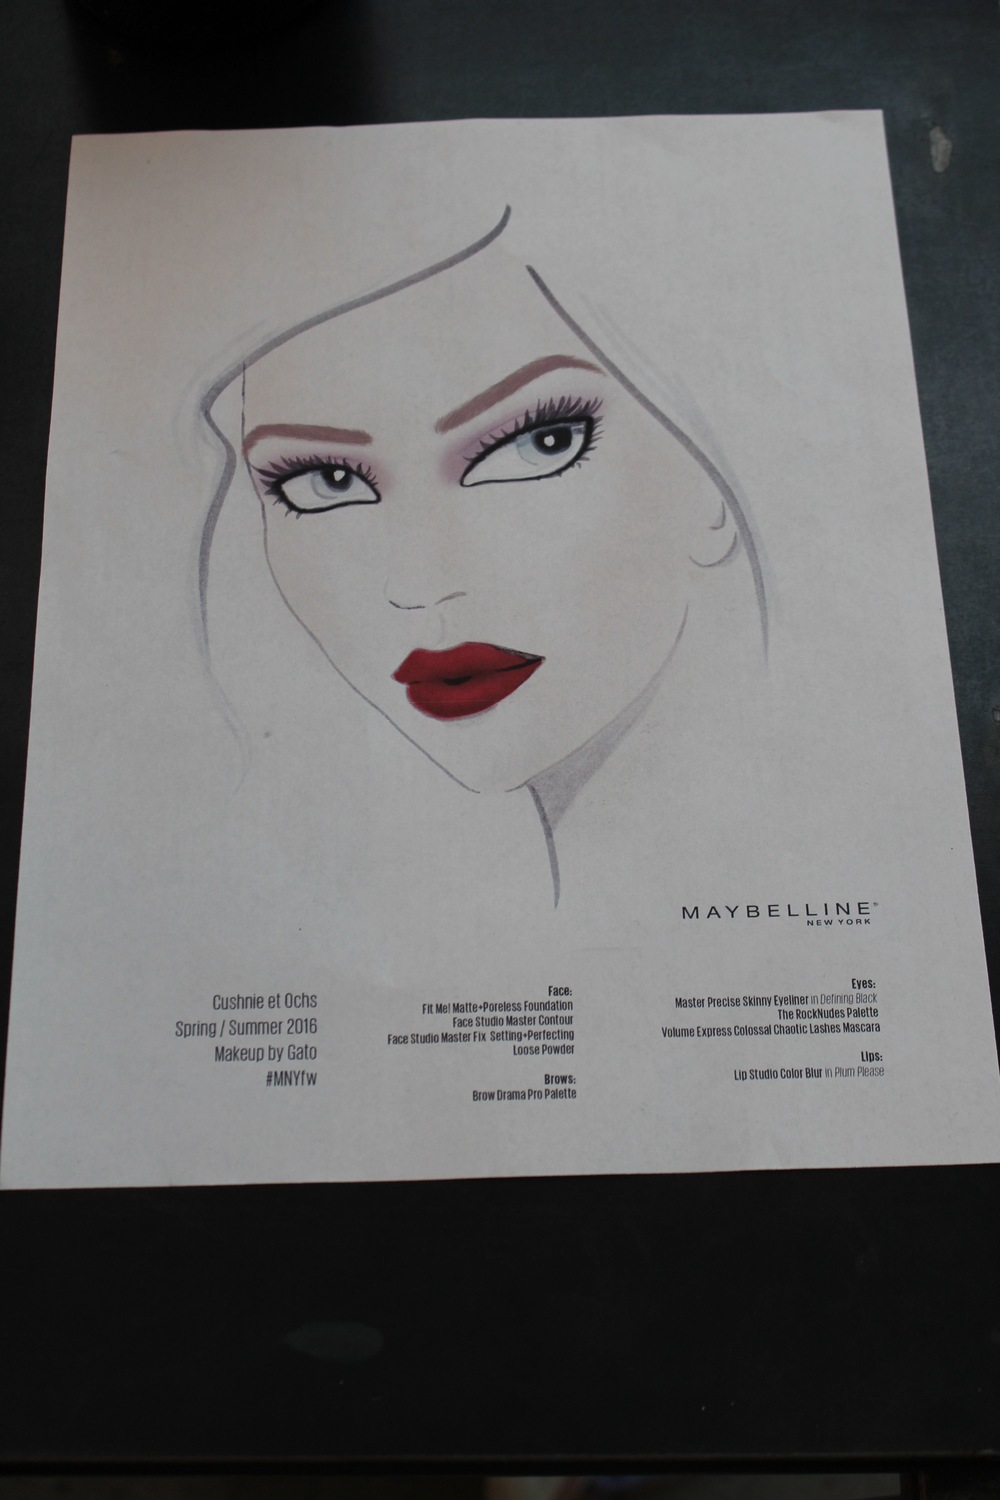 Maybelline New York makeup inspo sketch spotted backstage at Cushnie Et Ochs